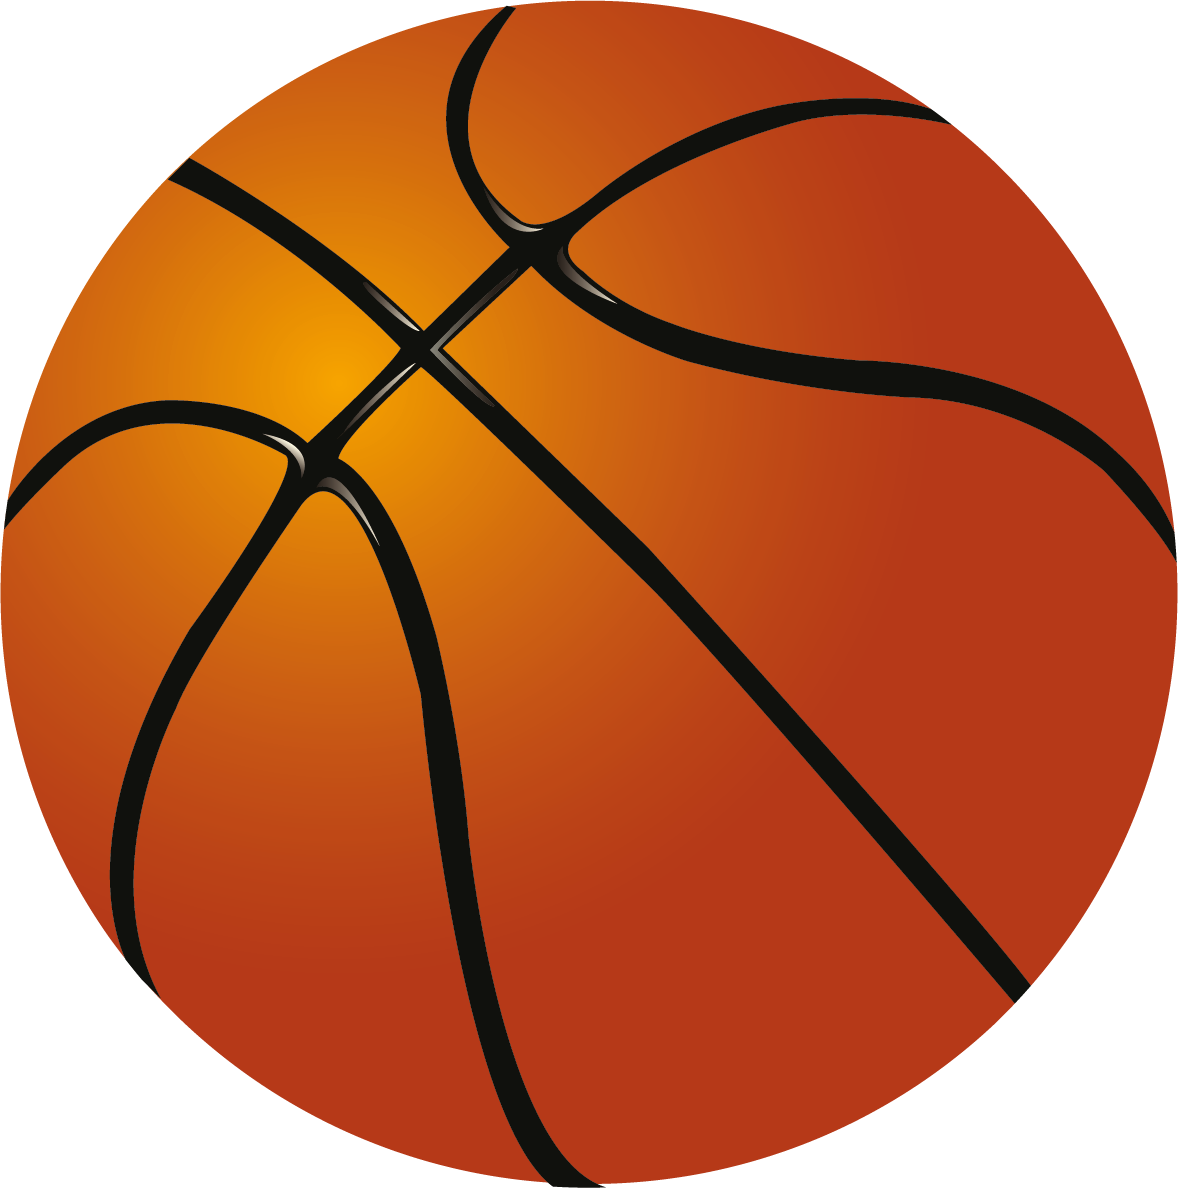 Red basketball clipart picture free ball - Buscar con Google | Niños | Pinterest | Basketball clipart ... picture free